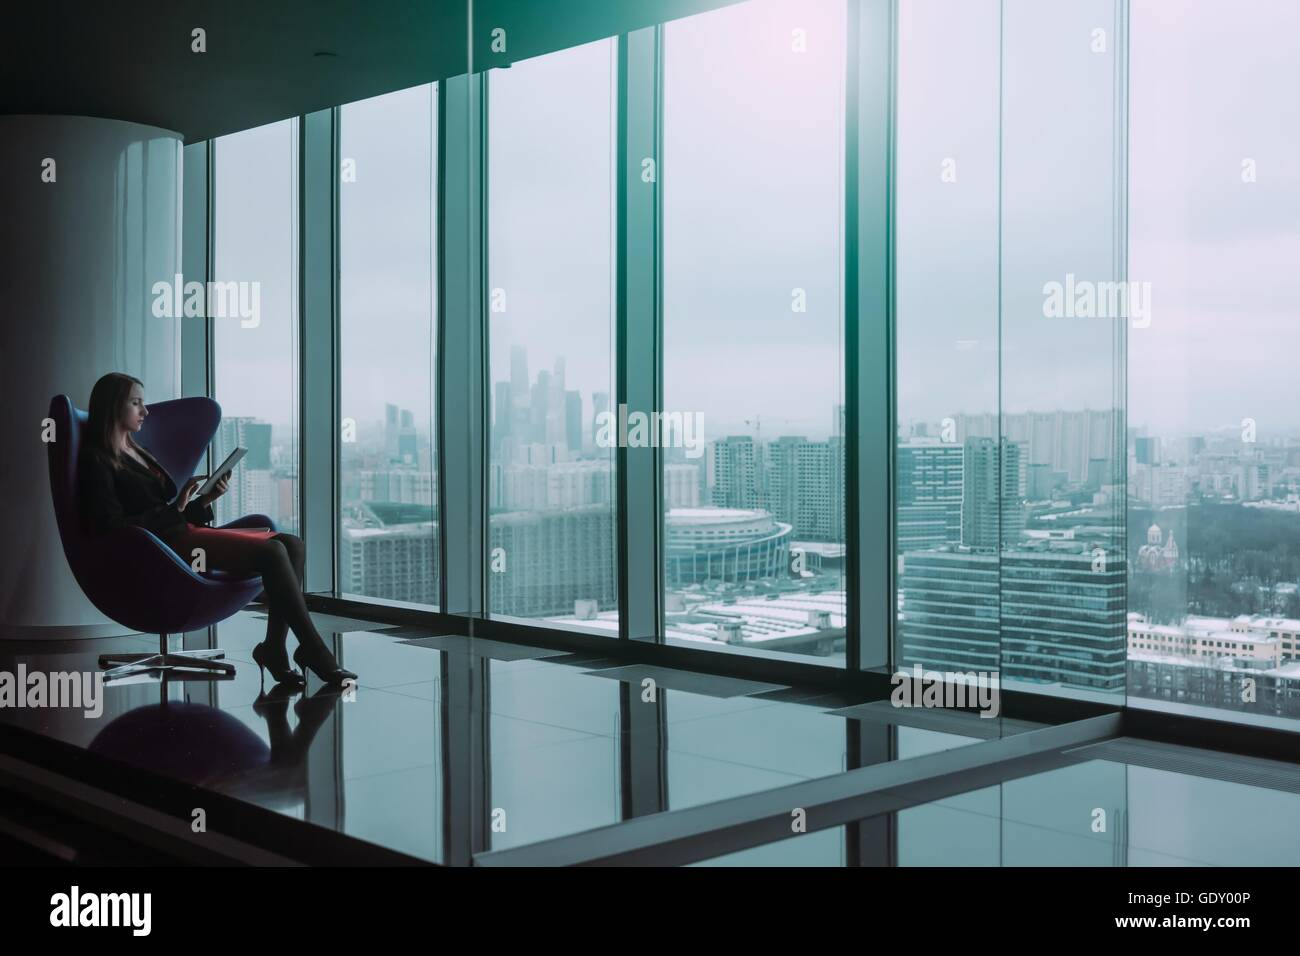 Silhouette of young business woman with tablet seated on a chair, winter city landscape - Stock Image